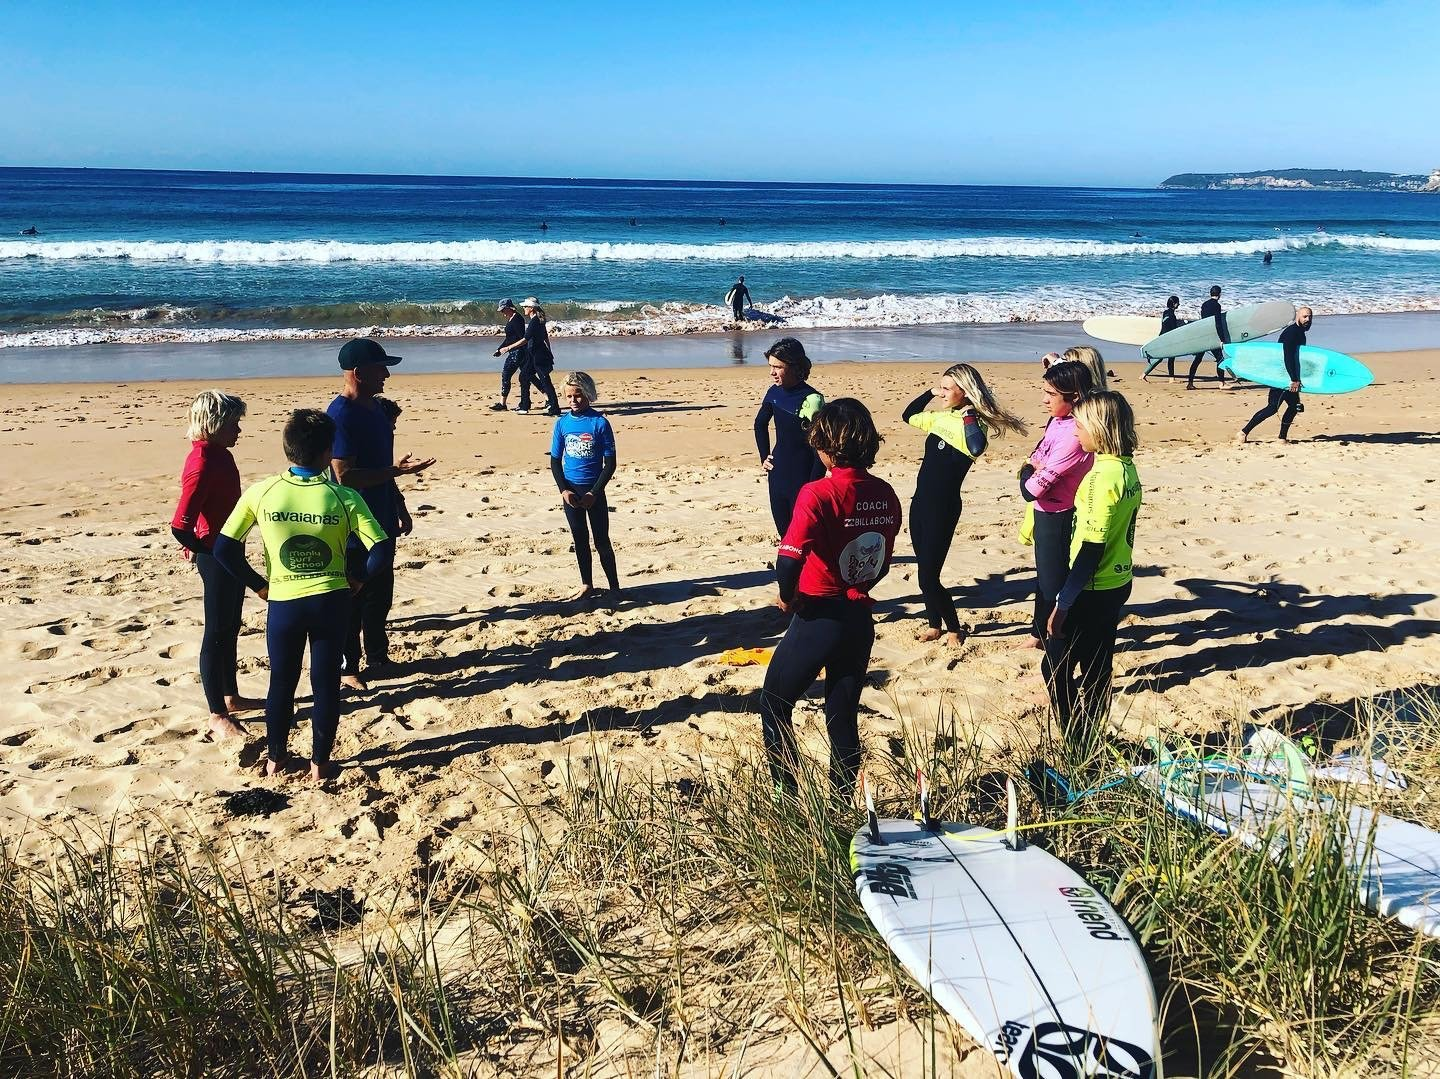 Hunter Academy of Sport surfers were mixing with top quality coaches and top-level facilities last week, attending the Manly Surf School High Performance Centre as part of the 2019/2020 Program.